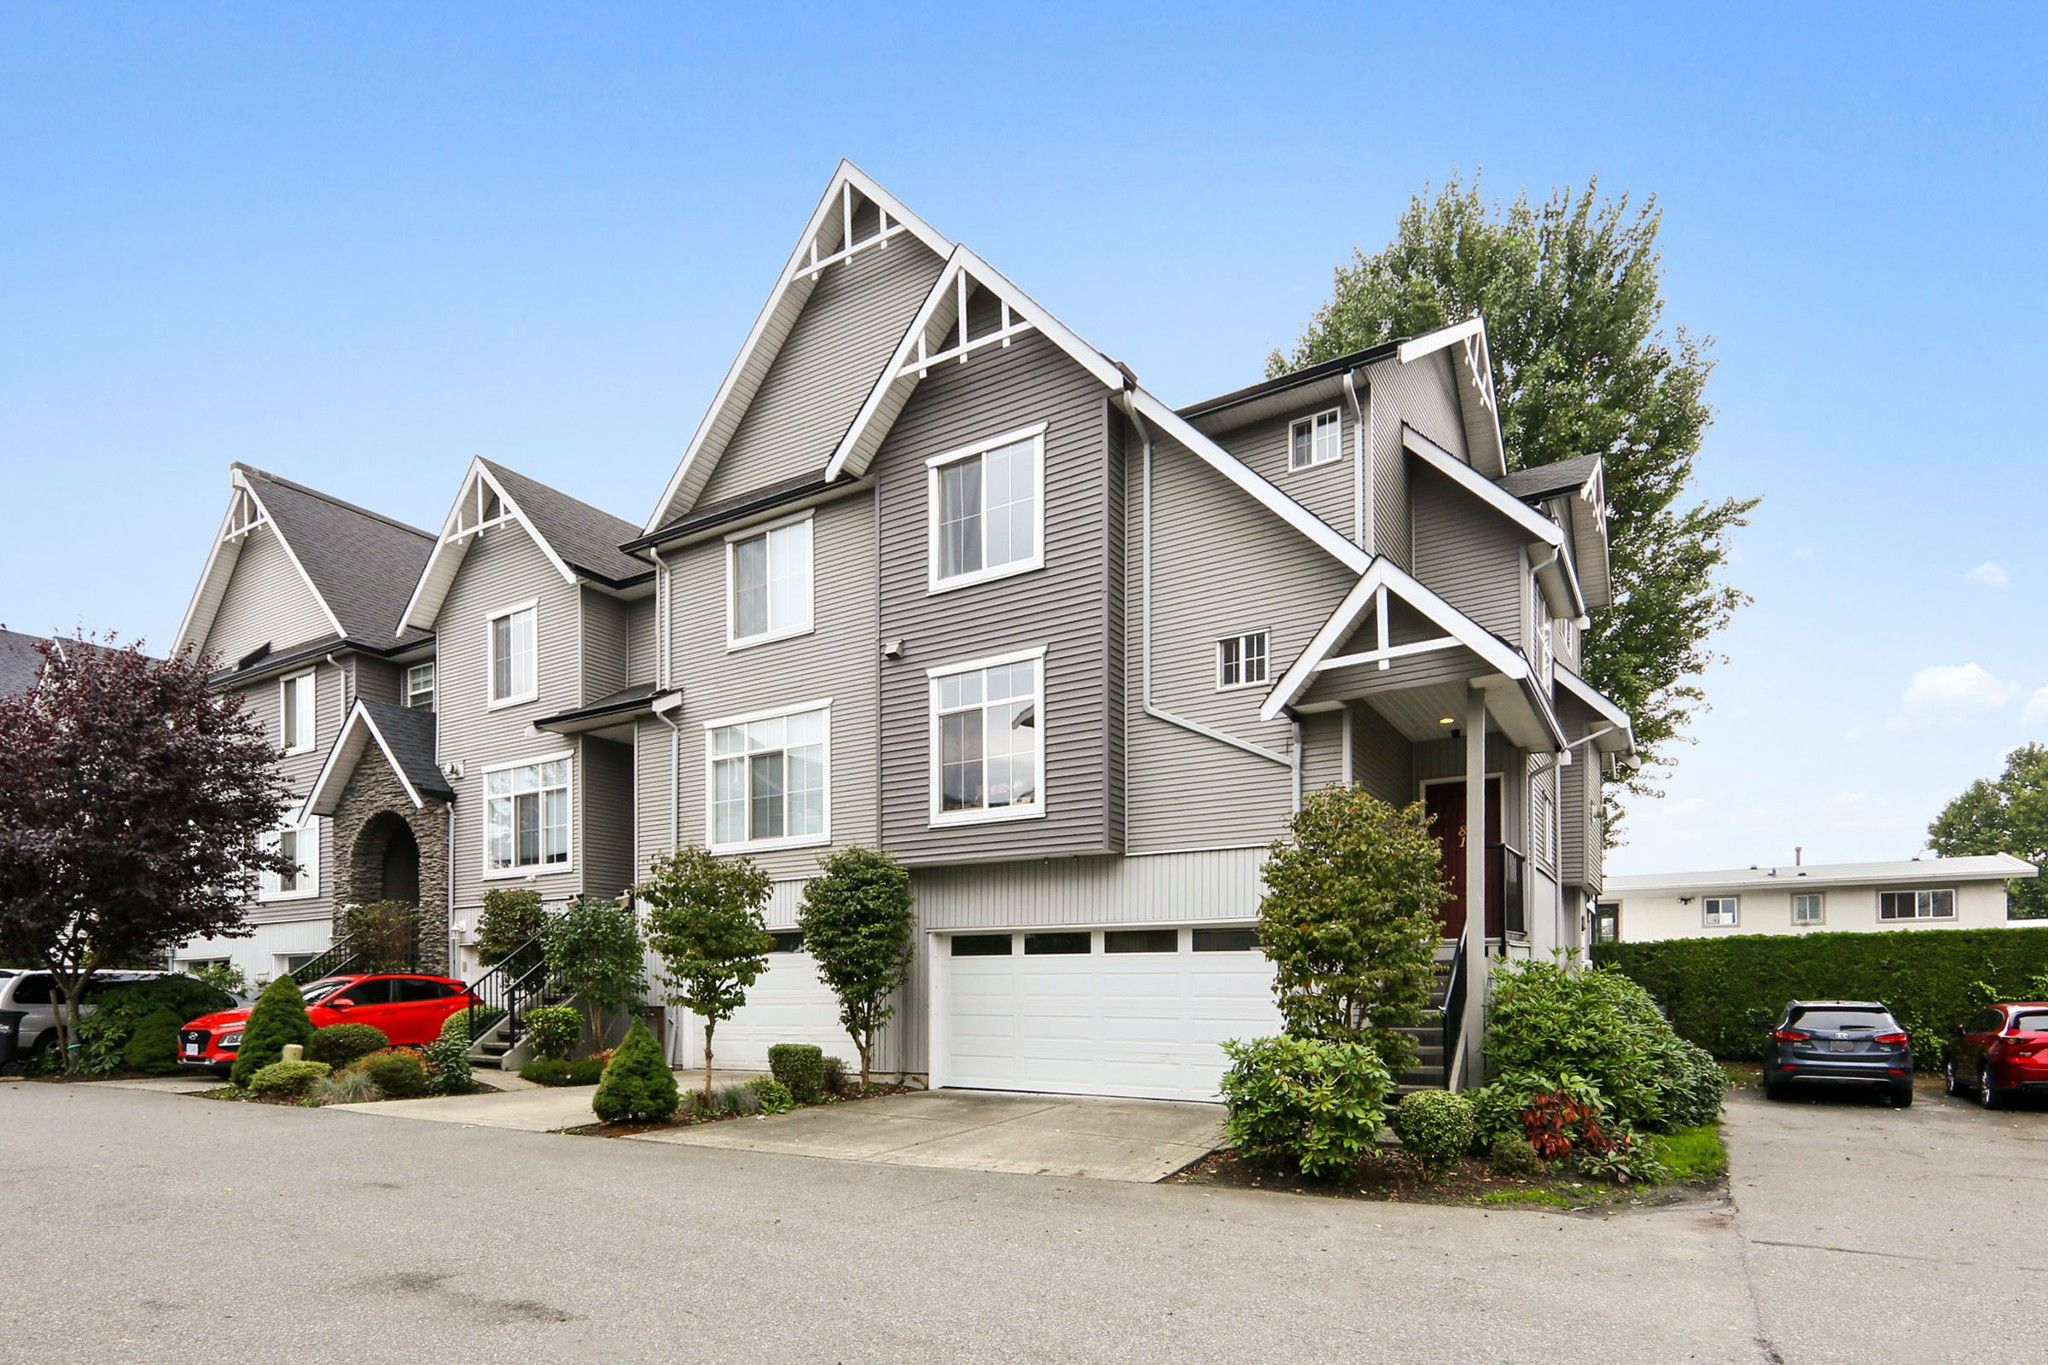 """Main Photo: 81 8881 WALTERS Street in Chilliwack: Chilliwack E Young-Yale Townhouse for sale in """"Eden Park"""" : MLS®# R2620581"""